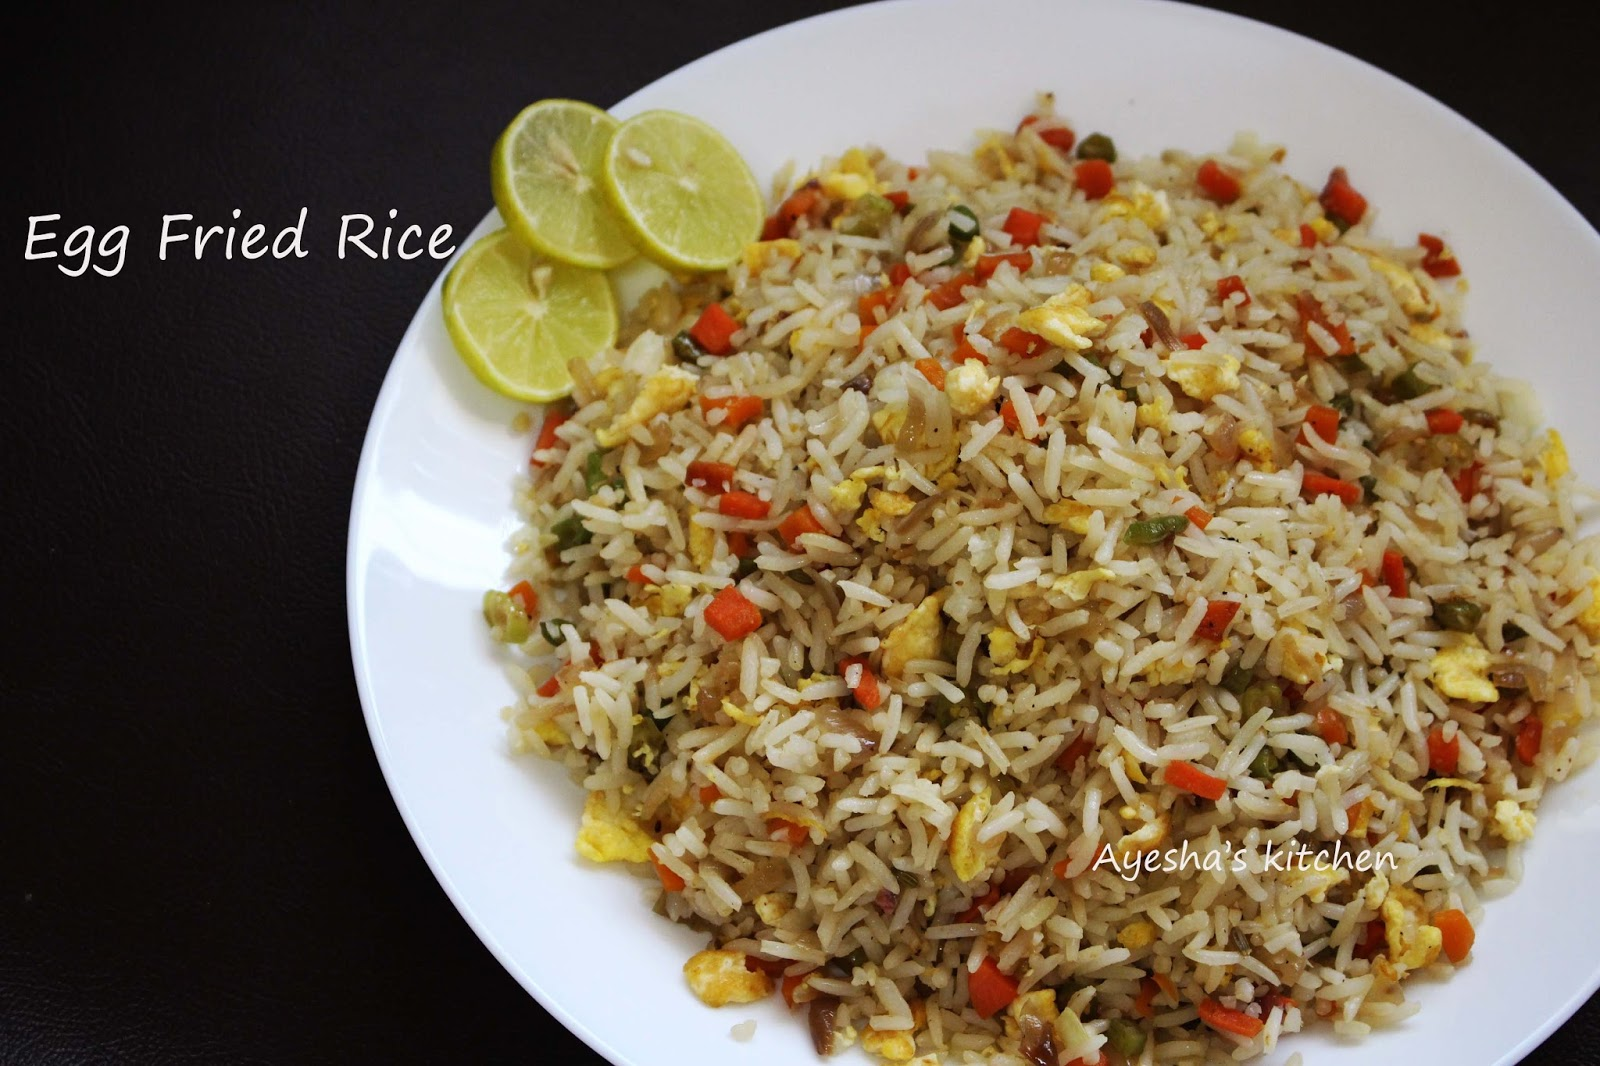 Egg fried rice recipe quick rice recipes hope you all like this egg fried rice recipe so here is the recipe showing how to make fried rice with egg ccuart Gallery